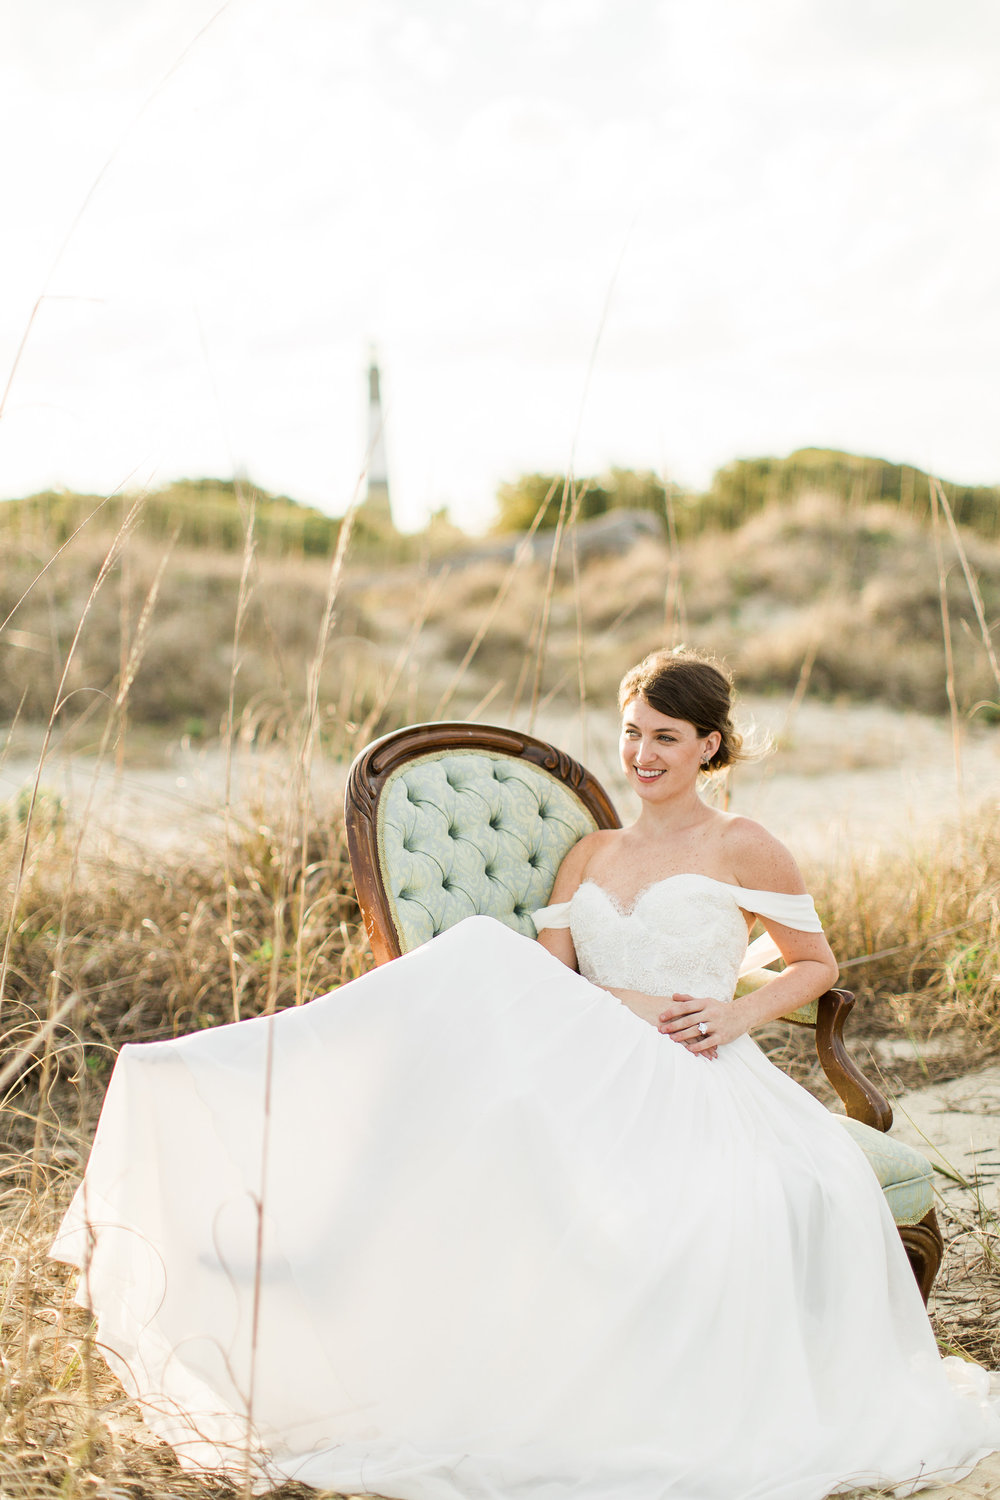 marianne-lucille-photography-jleslie-decor-tybee-wedding-sunset-wedding-beach-wedding-savannah-beach-wedding-sarah-seven-hayes-savannah-bridal-boutique-savannah-wedding-dresses-savannah-bridal-gowns-savannah-weddings-savannah-bridal-3.jpg